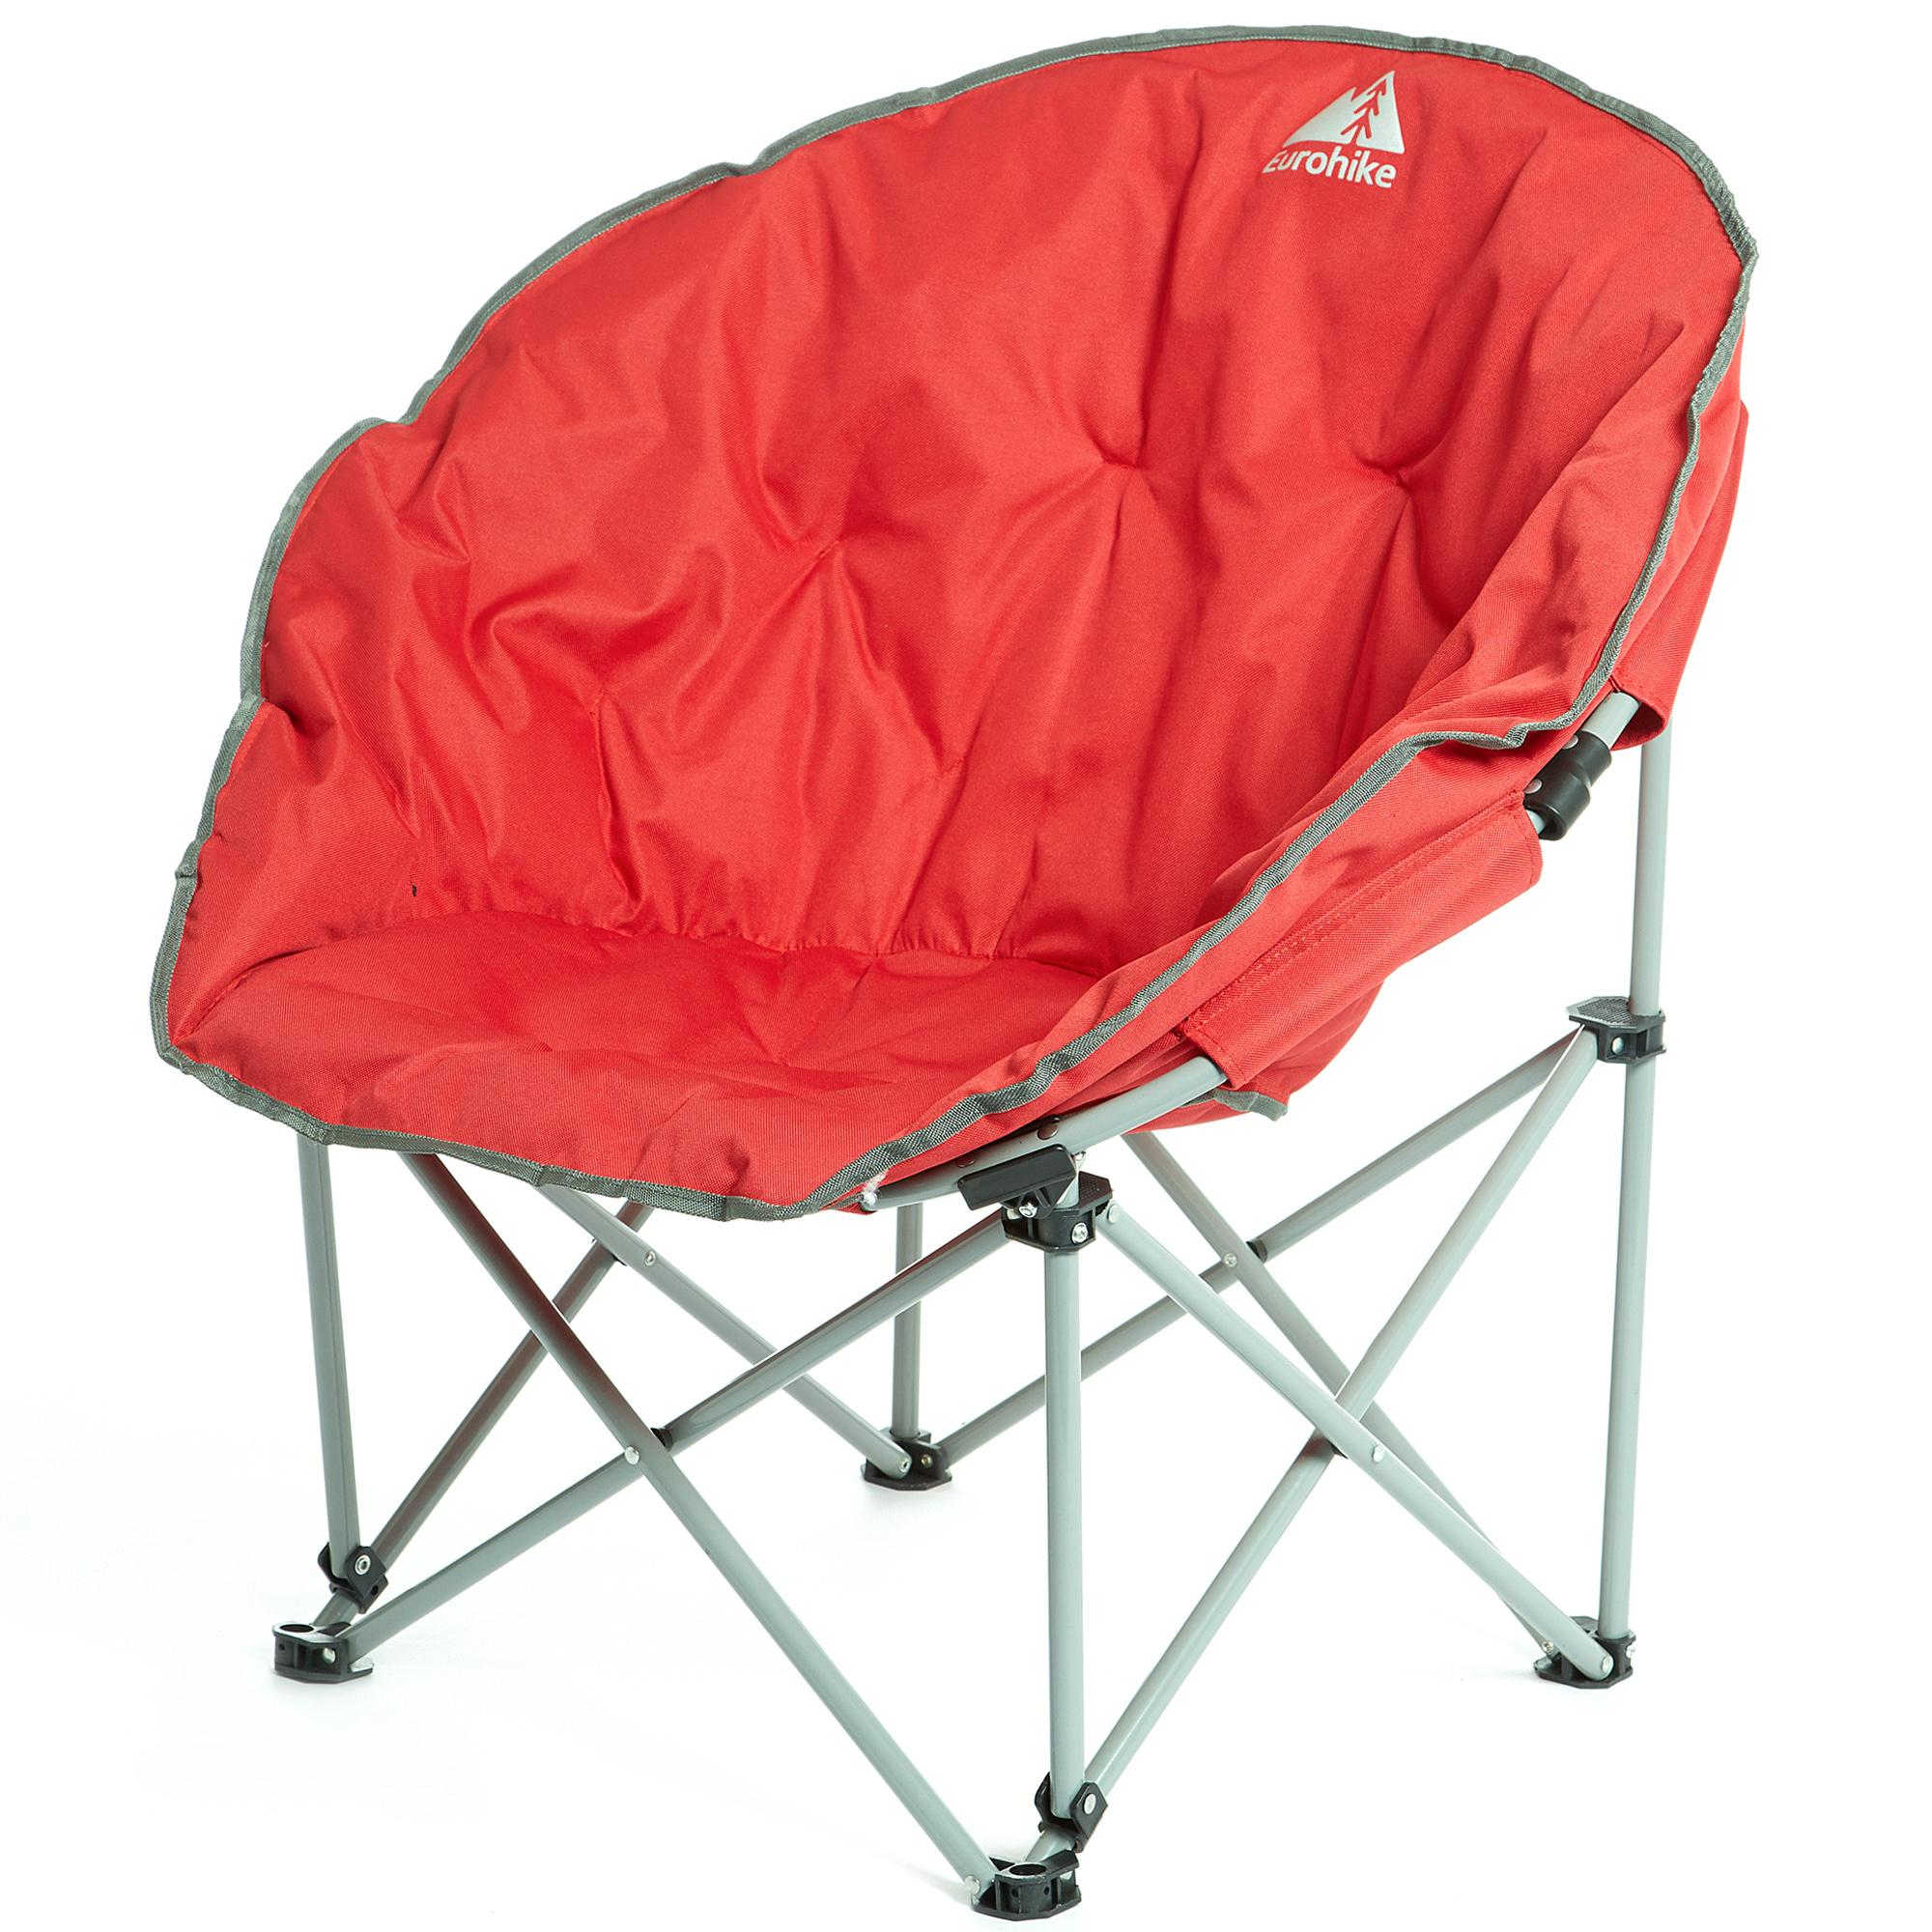 camping sofa uk cheap modern corner sofas eurohike deluxe moon chair